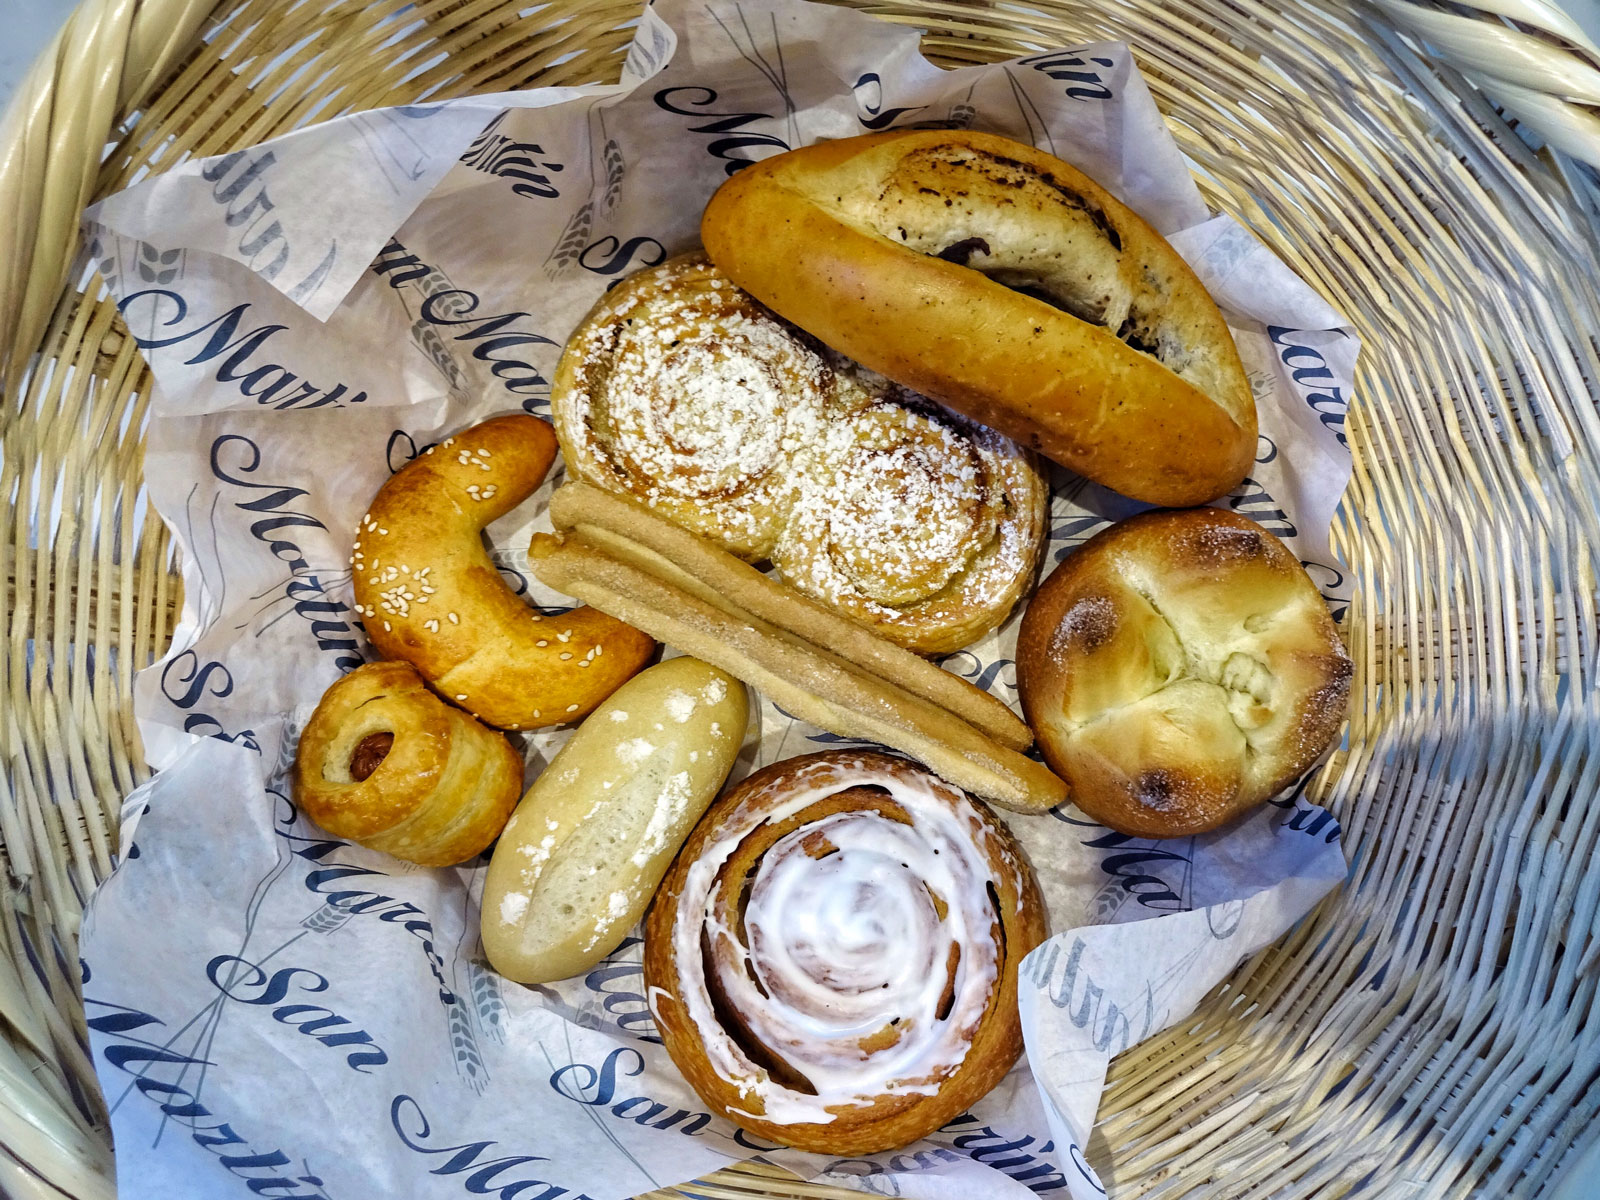 This Fancy Guatemalan Bakery Just Landed in Texas